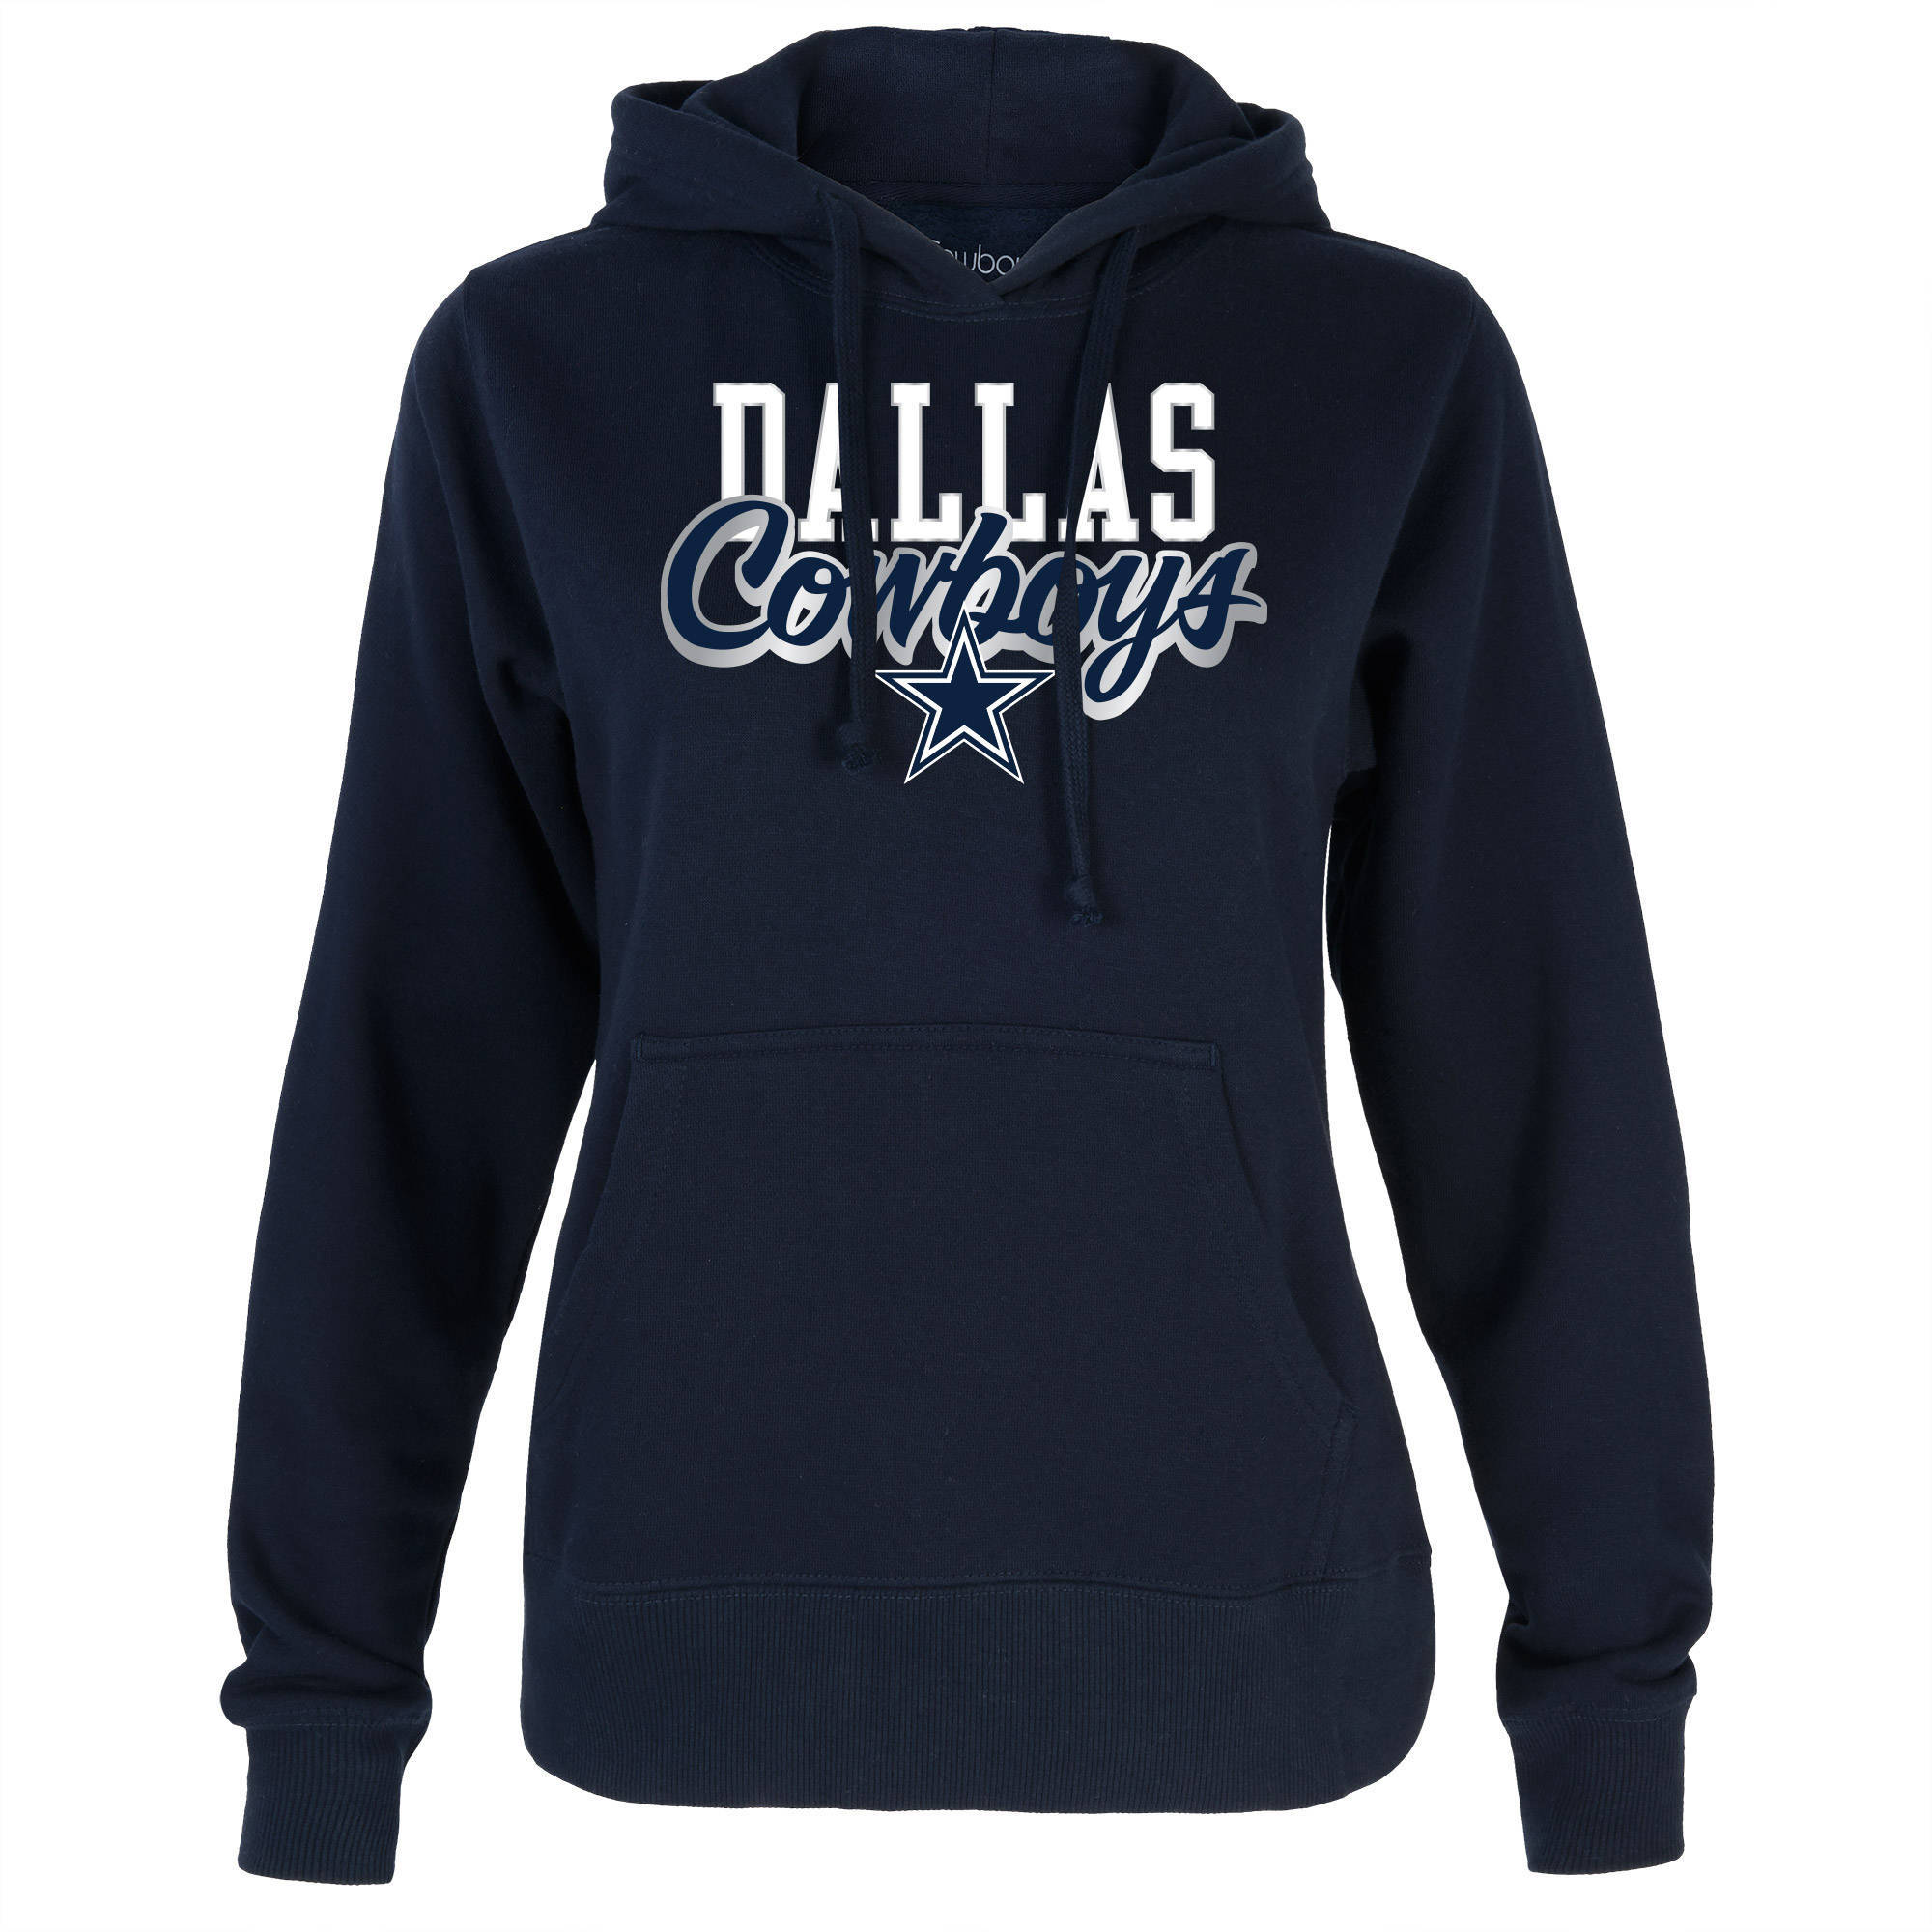 NFL Dallas Cowboys Womens Fleece Hoodies, 2XL